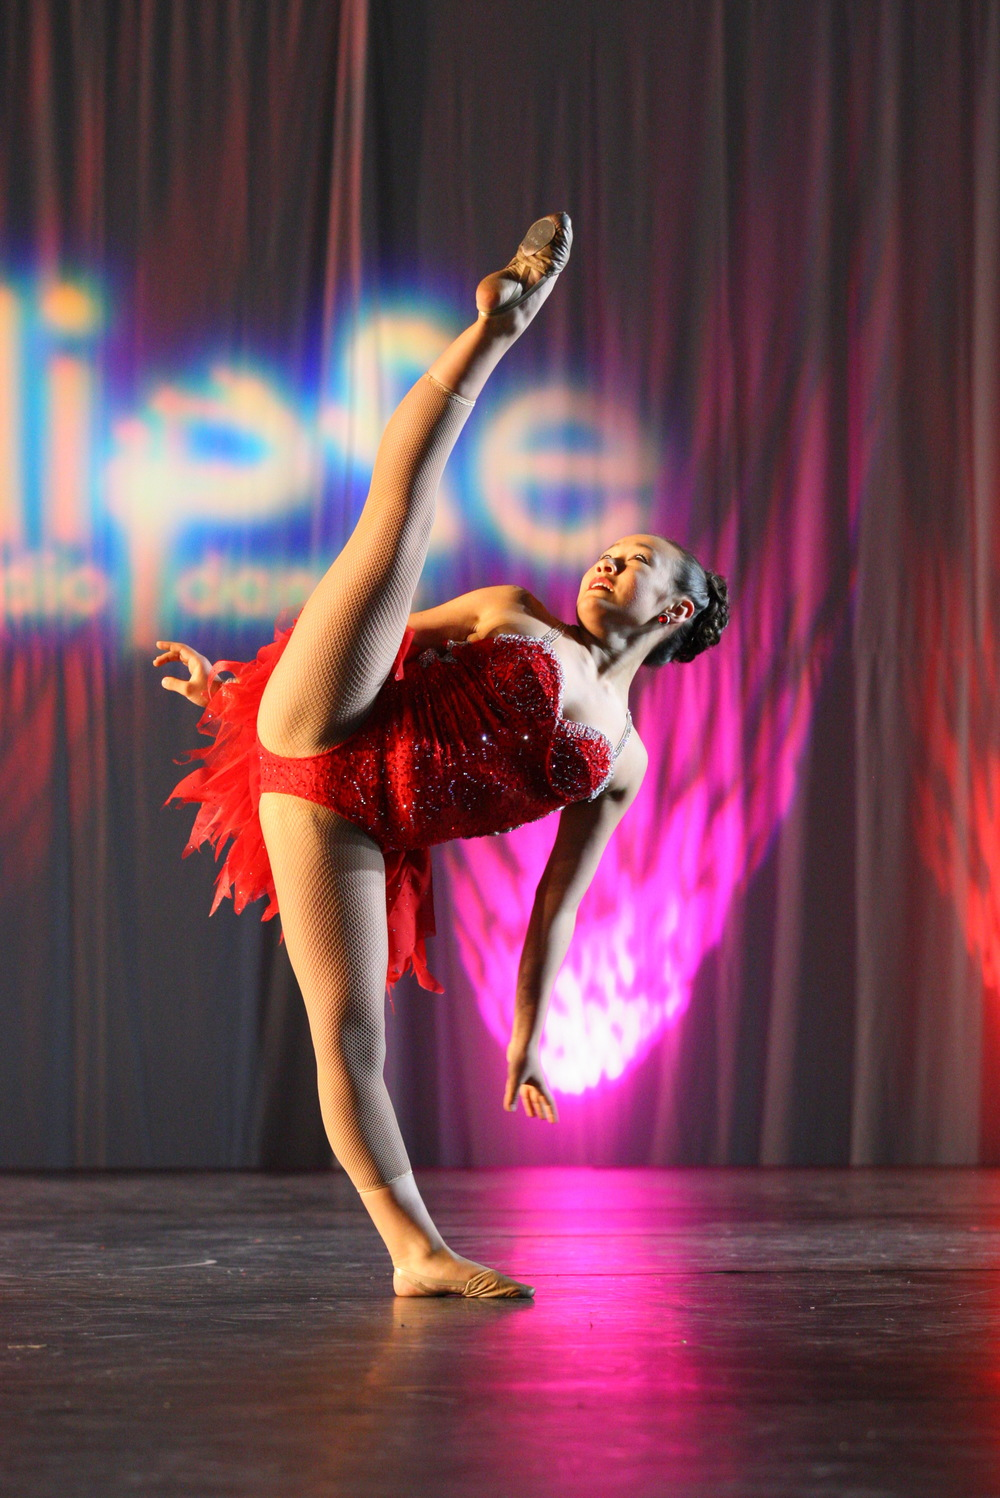 2013 - Chloe Bauer from Larkin Dance Studio